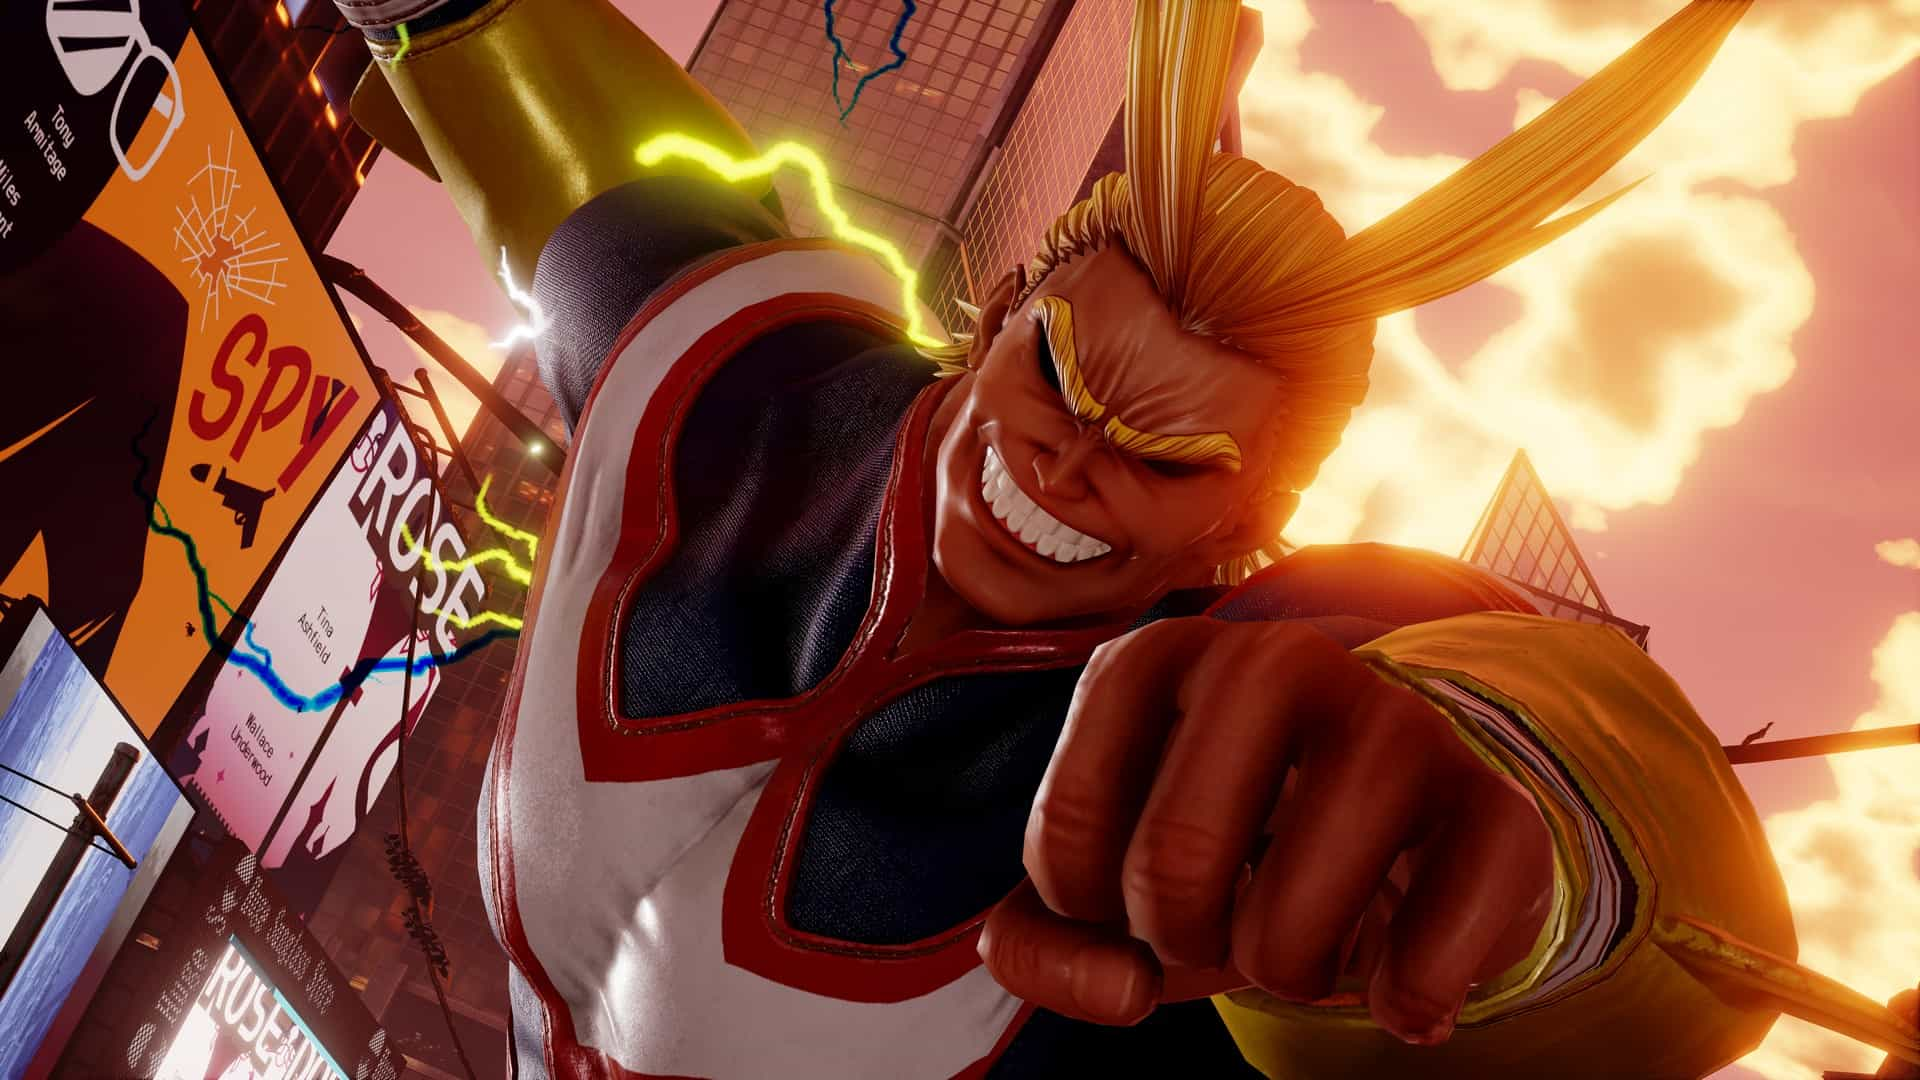 TRAILER: My Academia Series Join The Roster Of Fighters In JUMP FORCE